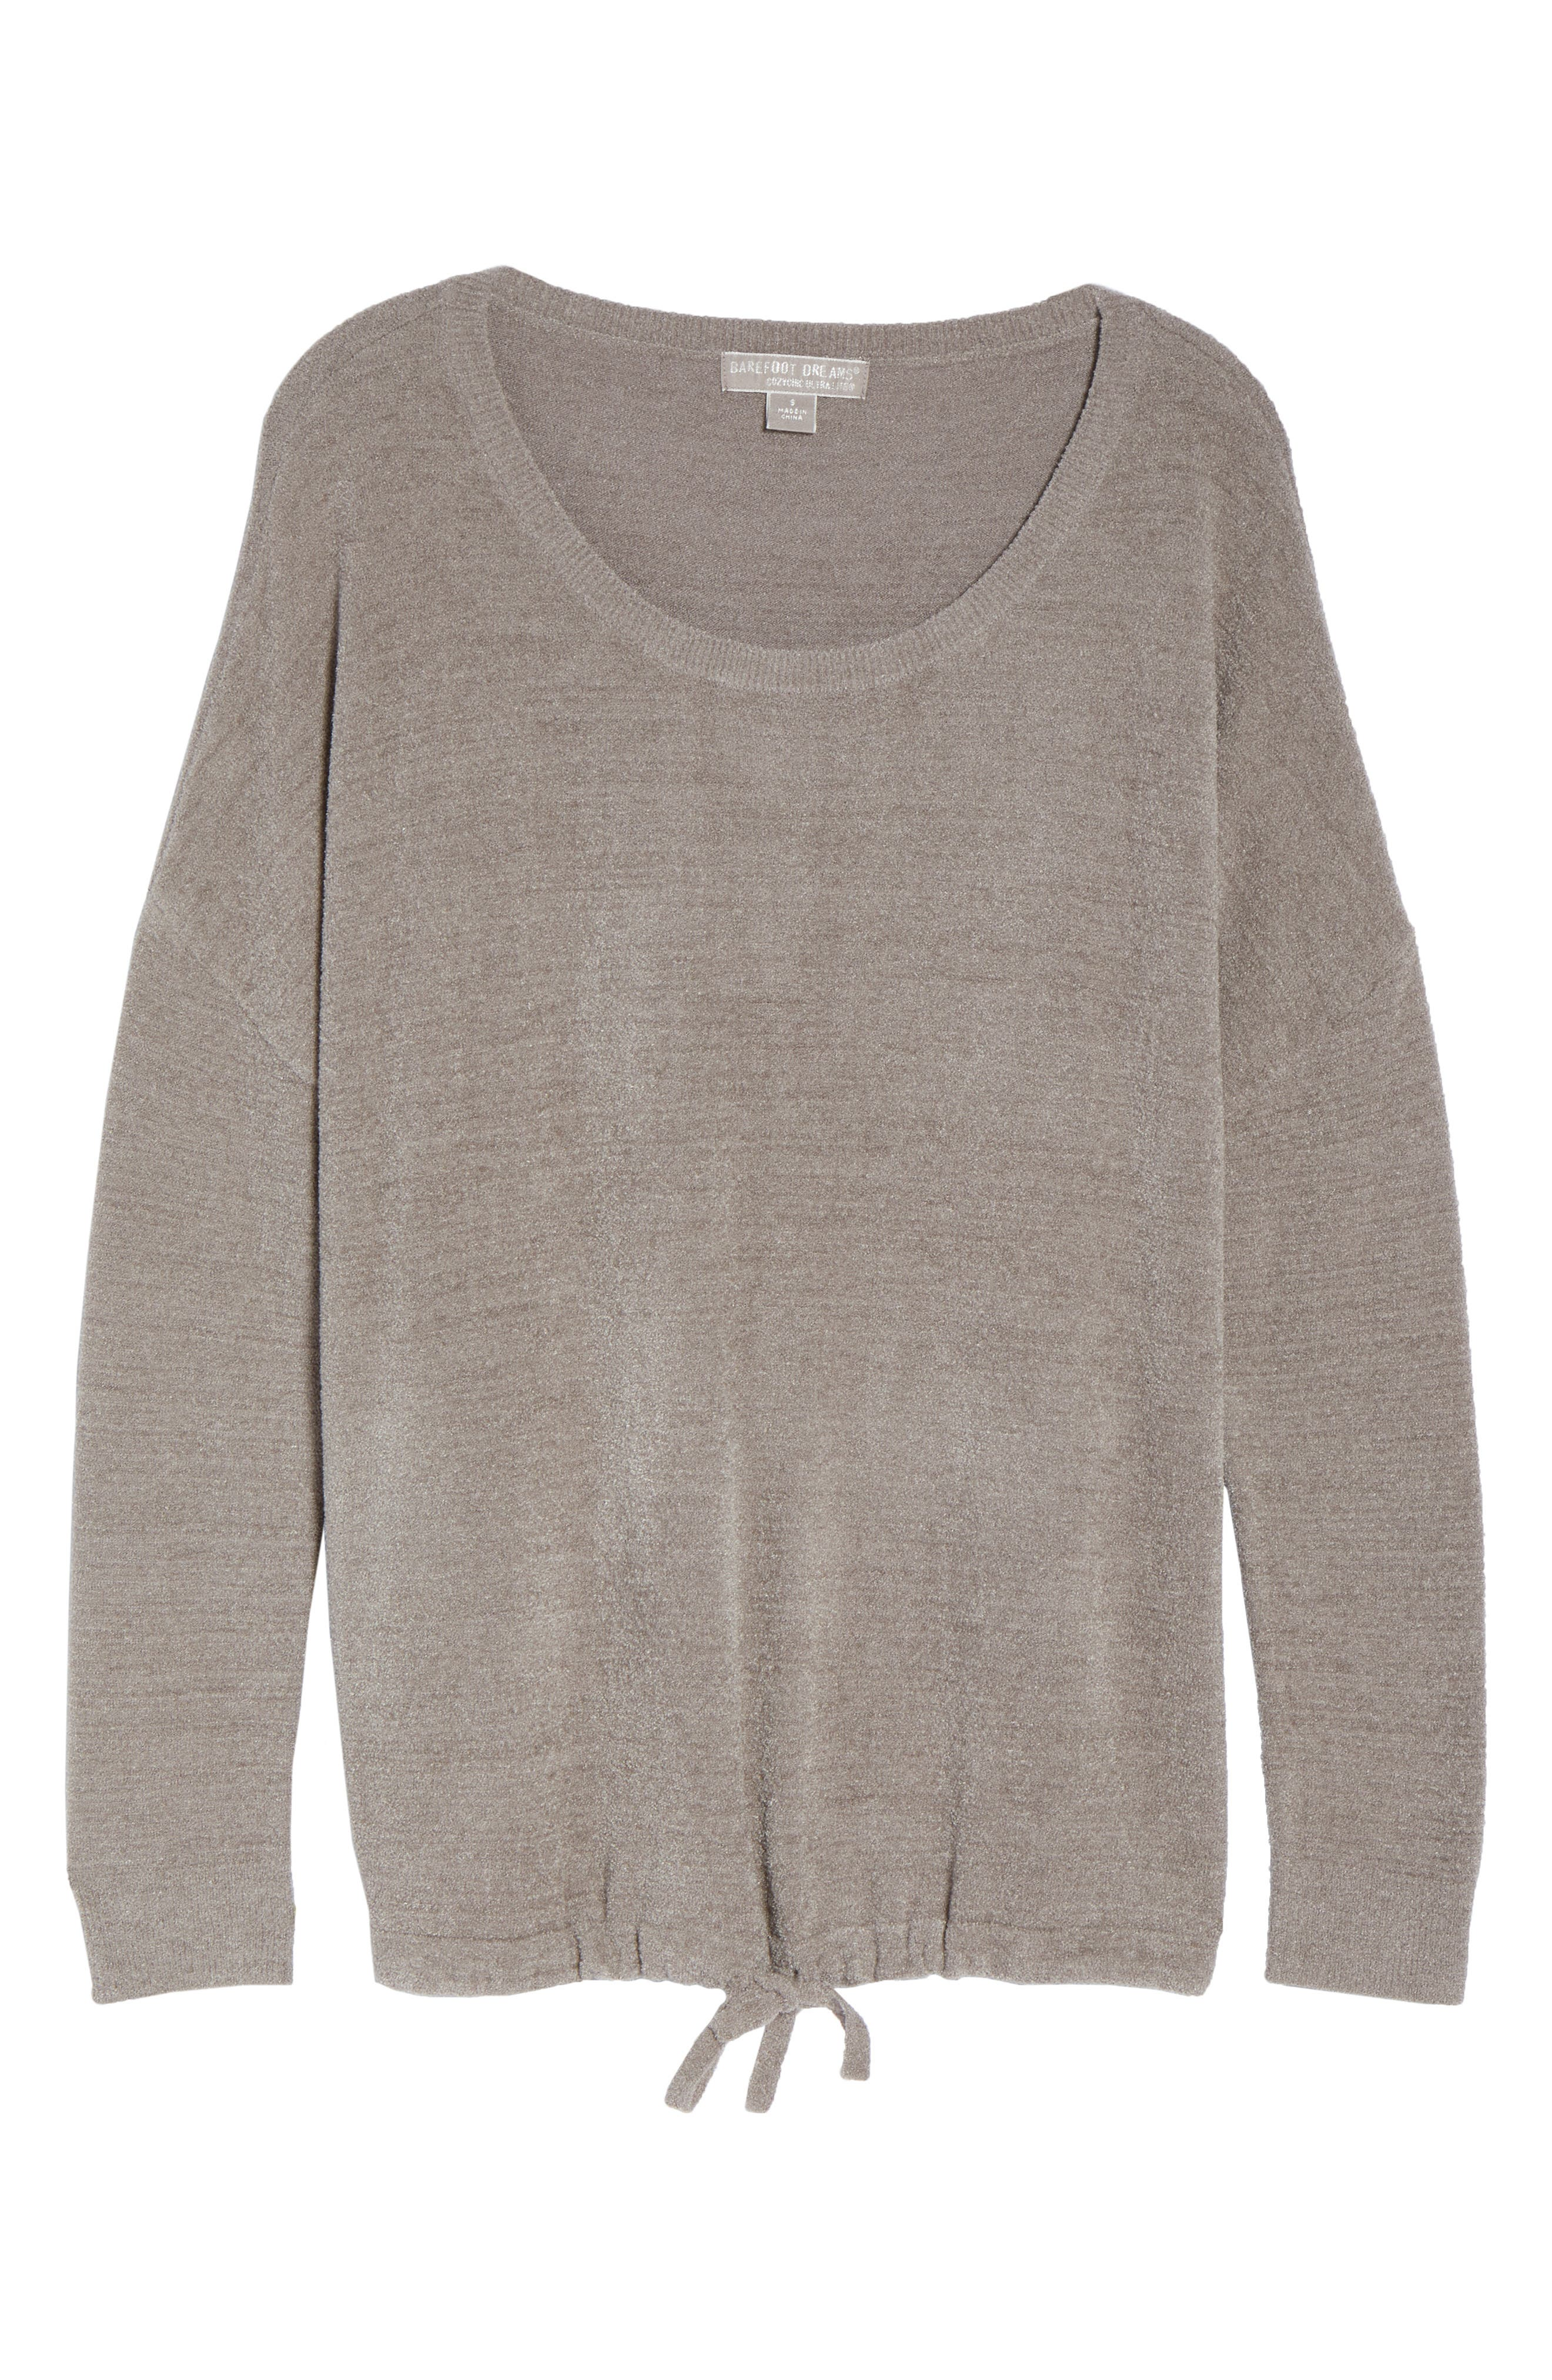 Cozychic Ultra Lite<sup>®</sup> Lounge Pullover,                             Alternate thumbnail 6, color,                             BEACH ROCK